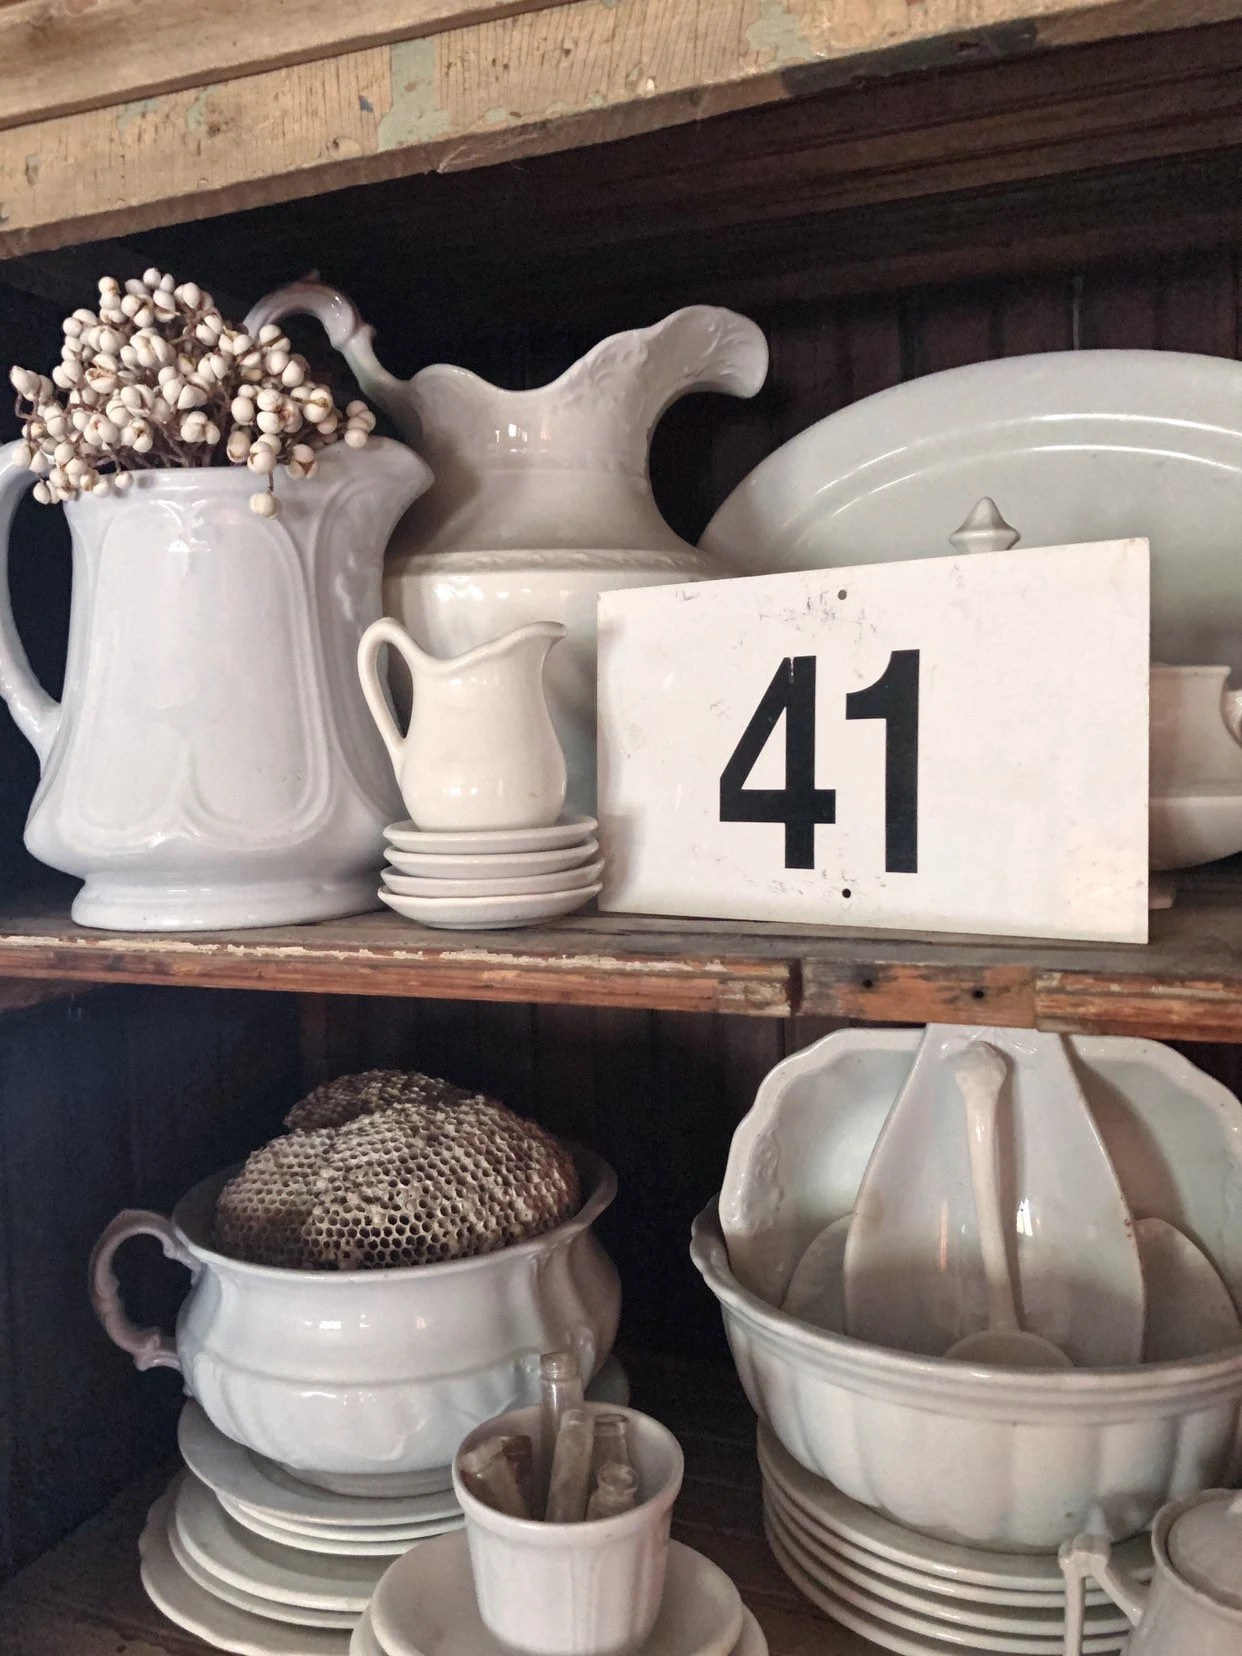 Vintage Metal Number Sign Chippy White Farmhouse Decor Industrial Salvage Address House Number French Country Chic Decor Black White Sign 41